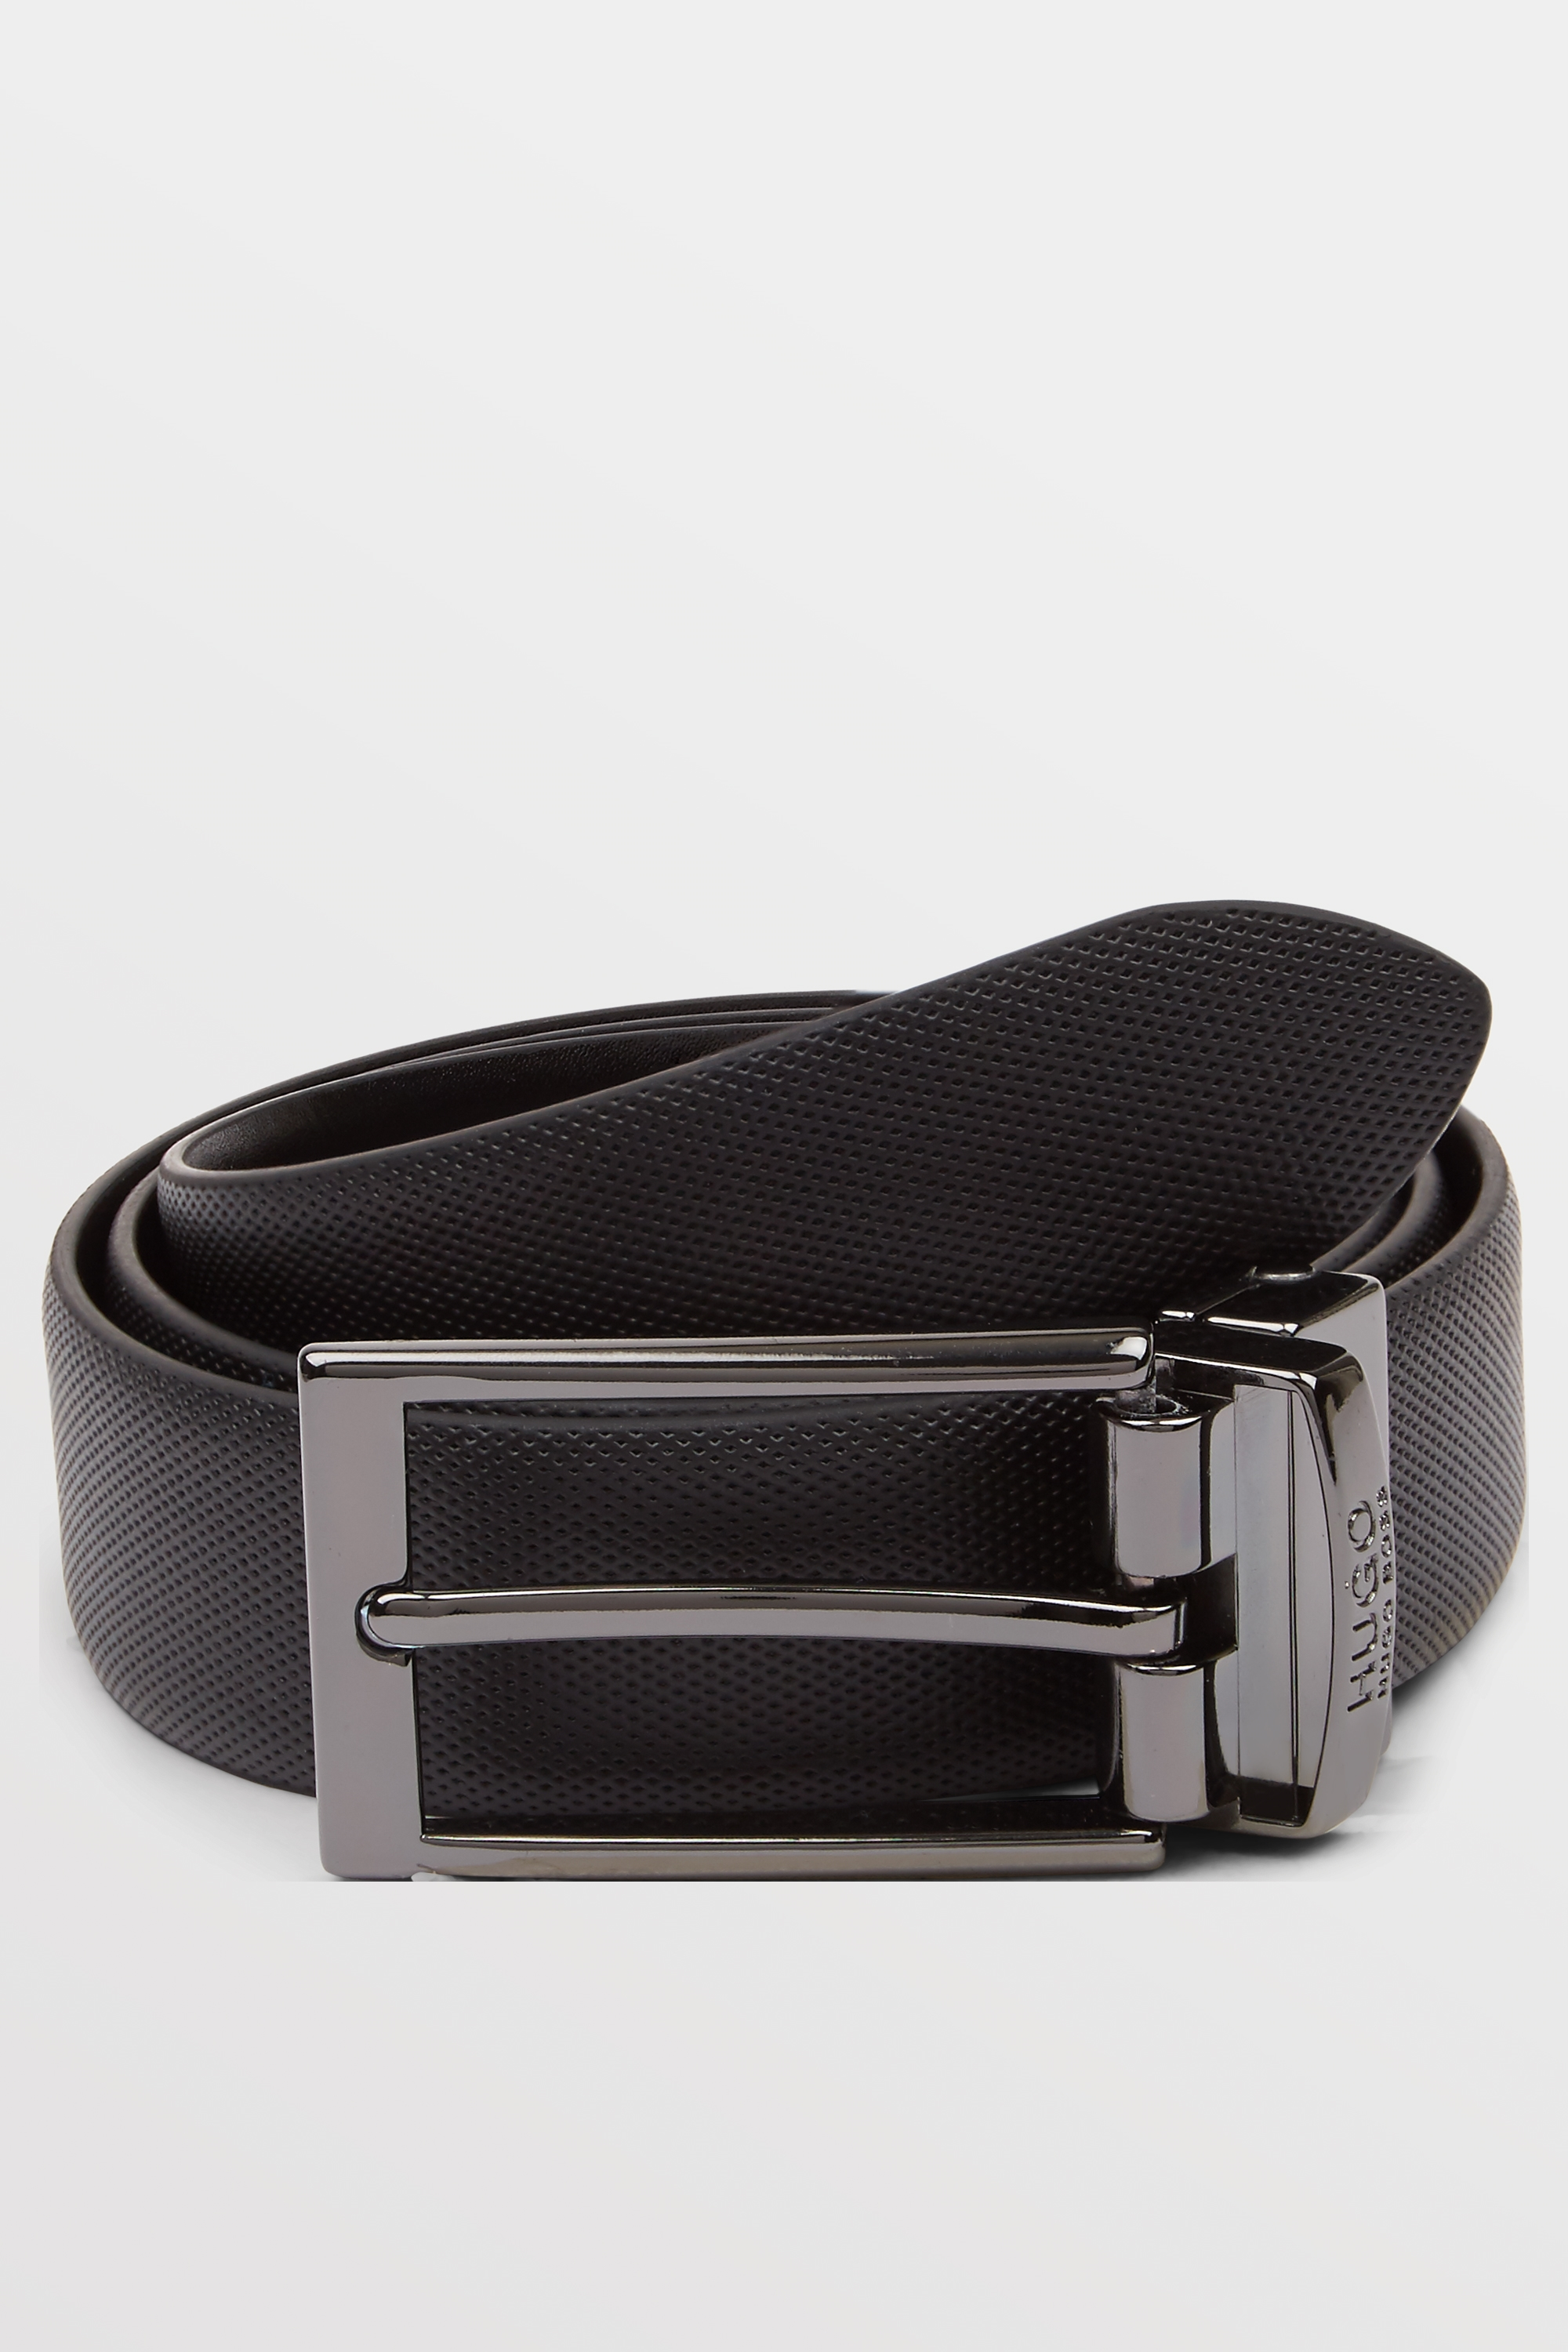 hugo by hugo boss black reversible textured belt. Black Bedroom Furniture Sets. Home Design Ideas